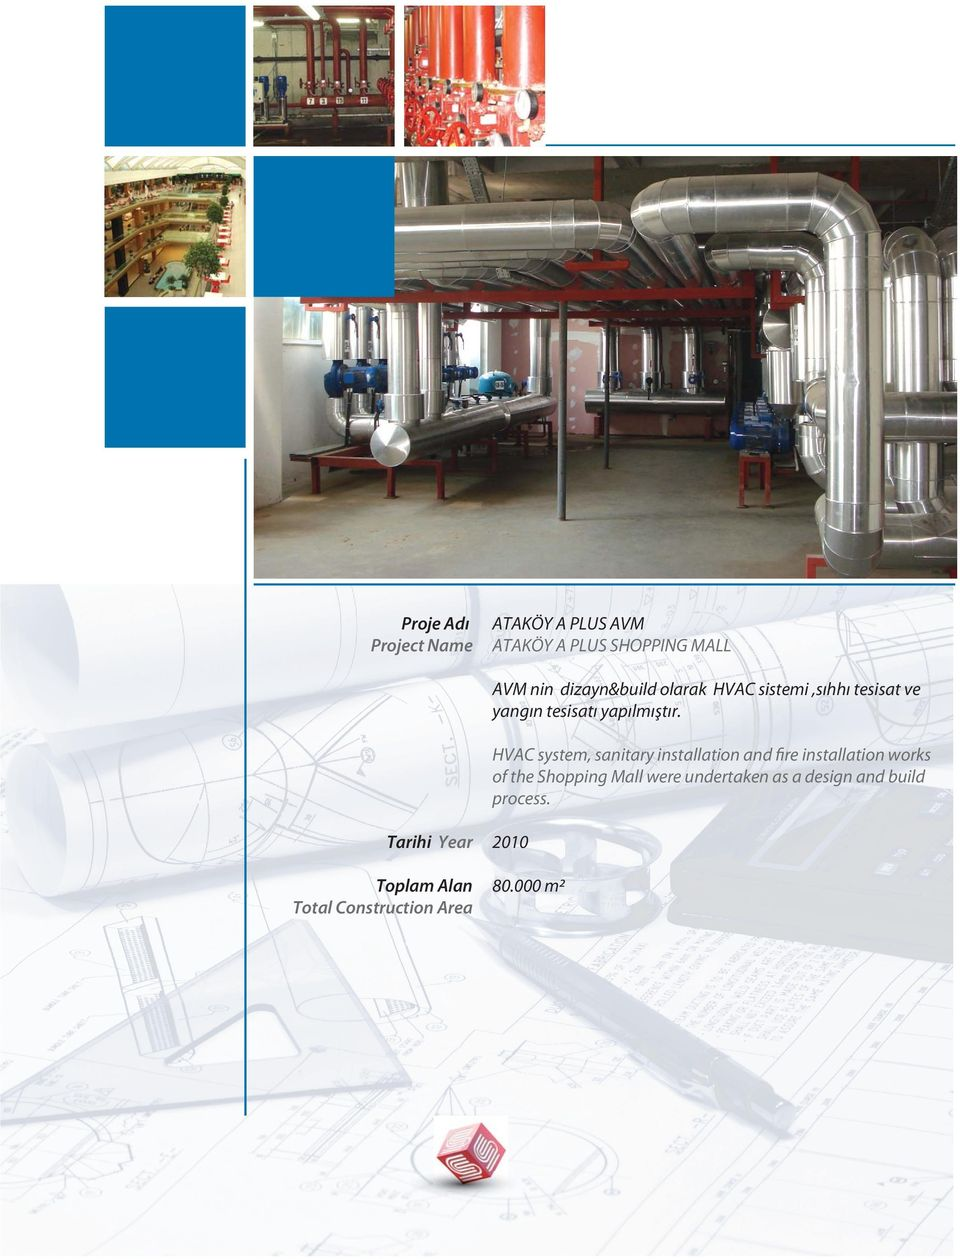 HVAC system, sanitary installation and fire installation works of the